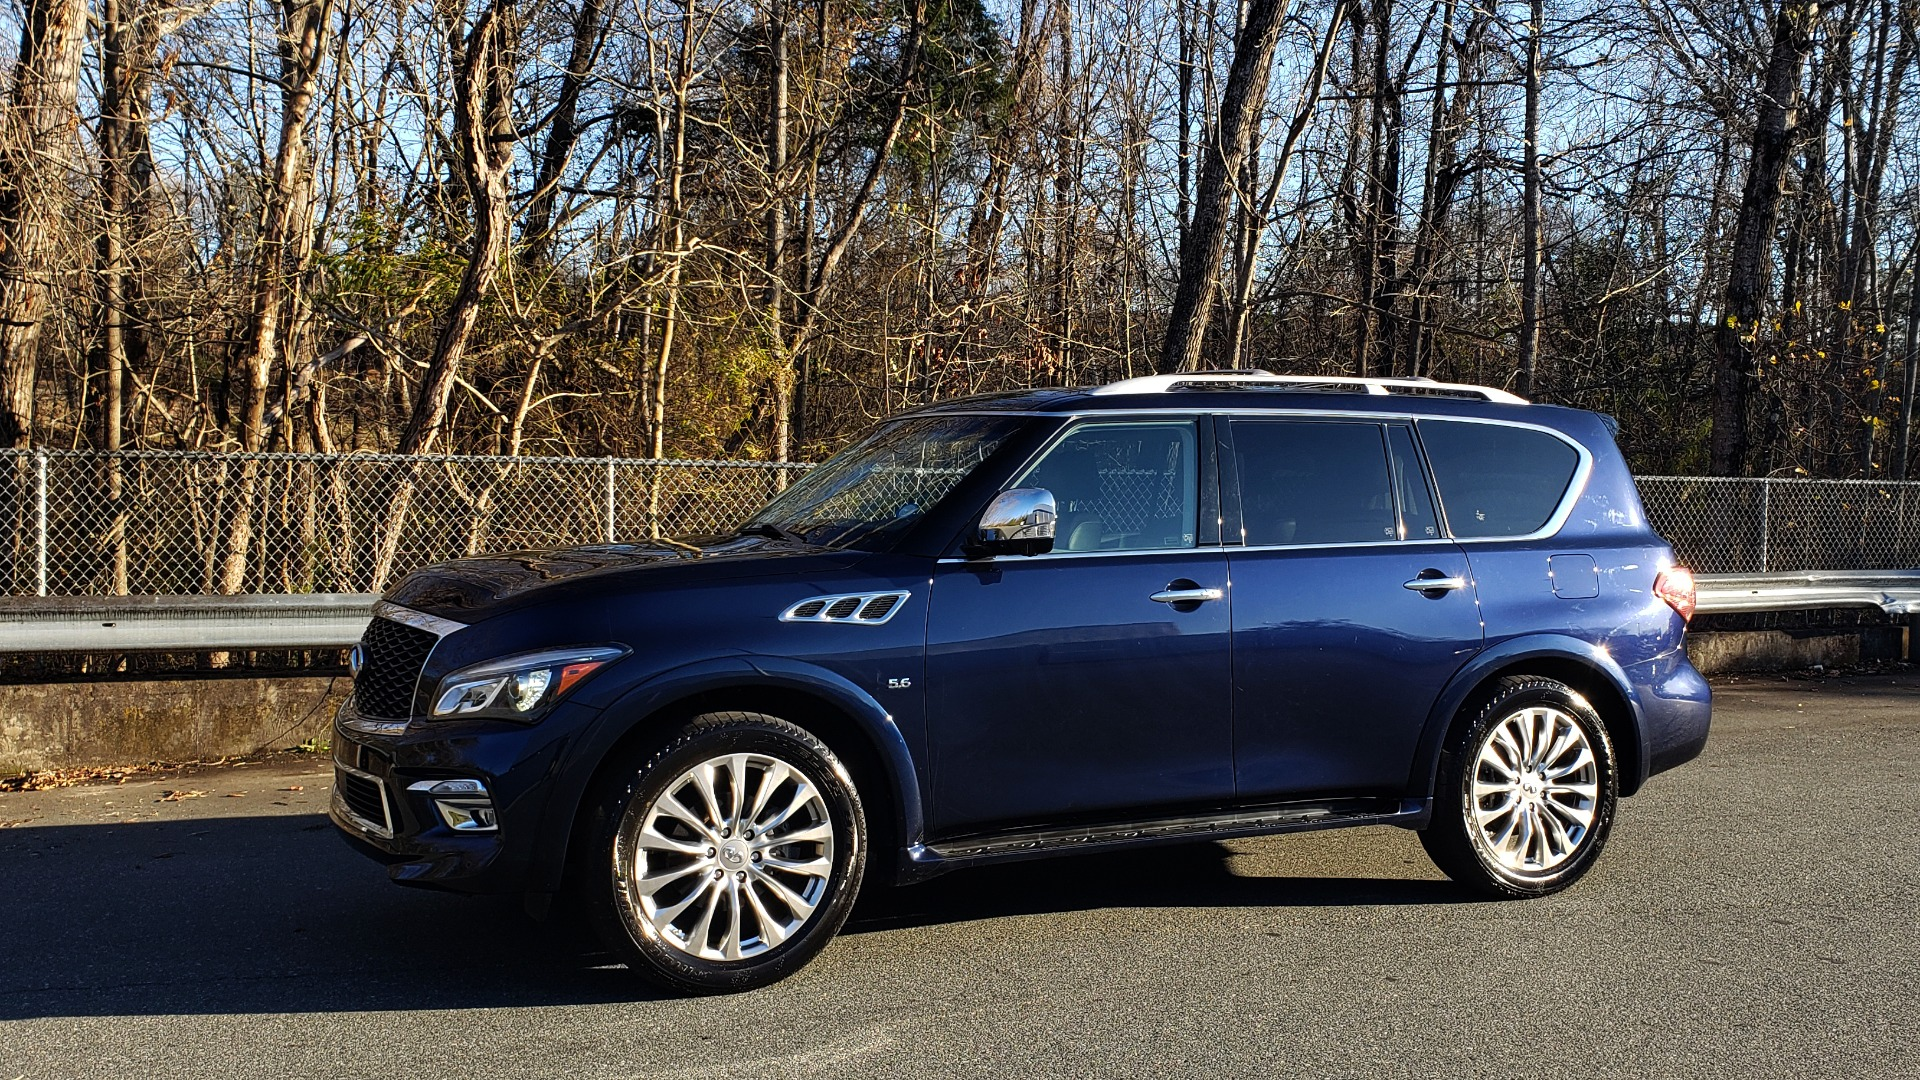 Used 2017 INFINITI QX80 4WD / NAV / SUNROOF / 3-ROW / THEATER PKG / REARVIEW for sale $46,495 at Formula Imports in Charlotte NC 28227 1